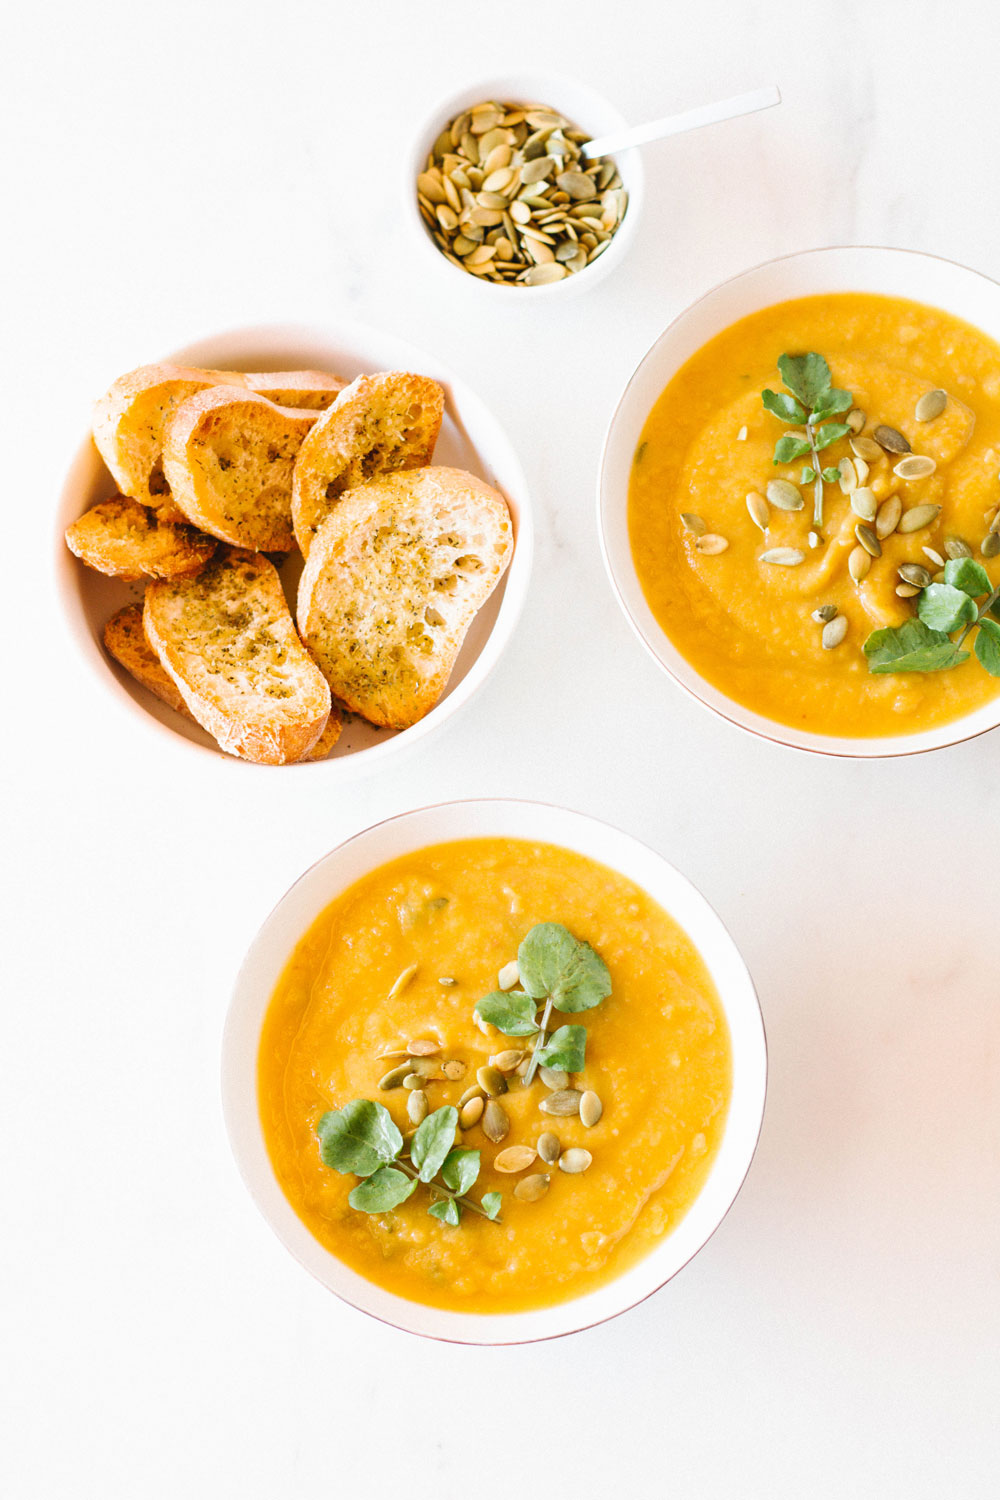 This Fall Harvest Vegetable Soup Recipe is full of hearty vegetables like sweet potatoes, butternut squash, and more. It's thick, delicious and, even though it's low in calories, it's still super-satisfying and filling. Whip up a warm batch of this comforting soup and cozy up on the couch with a good book or movie. https://www.spotebi.com/recipes/fall-harvest-vegetable-soup-recipe/